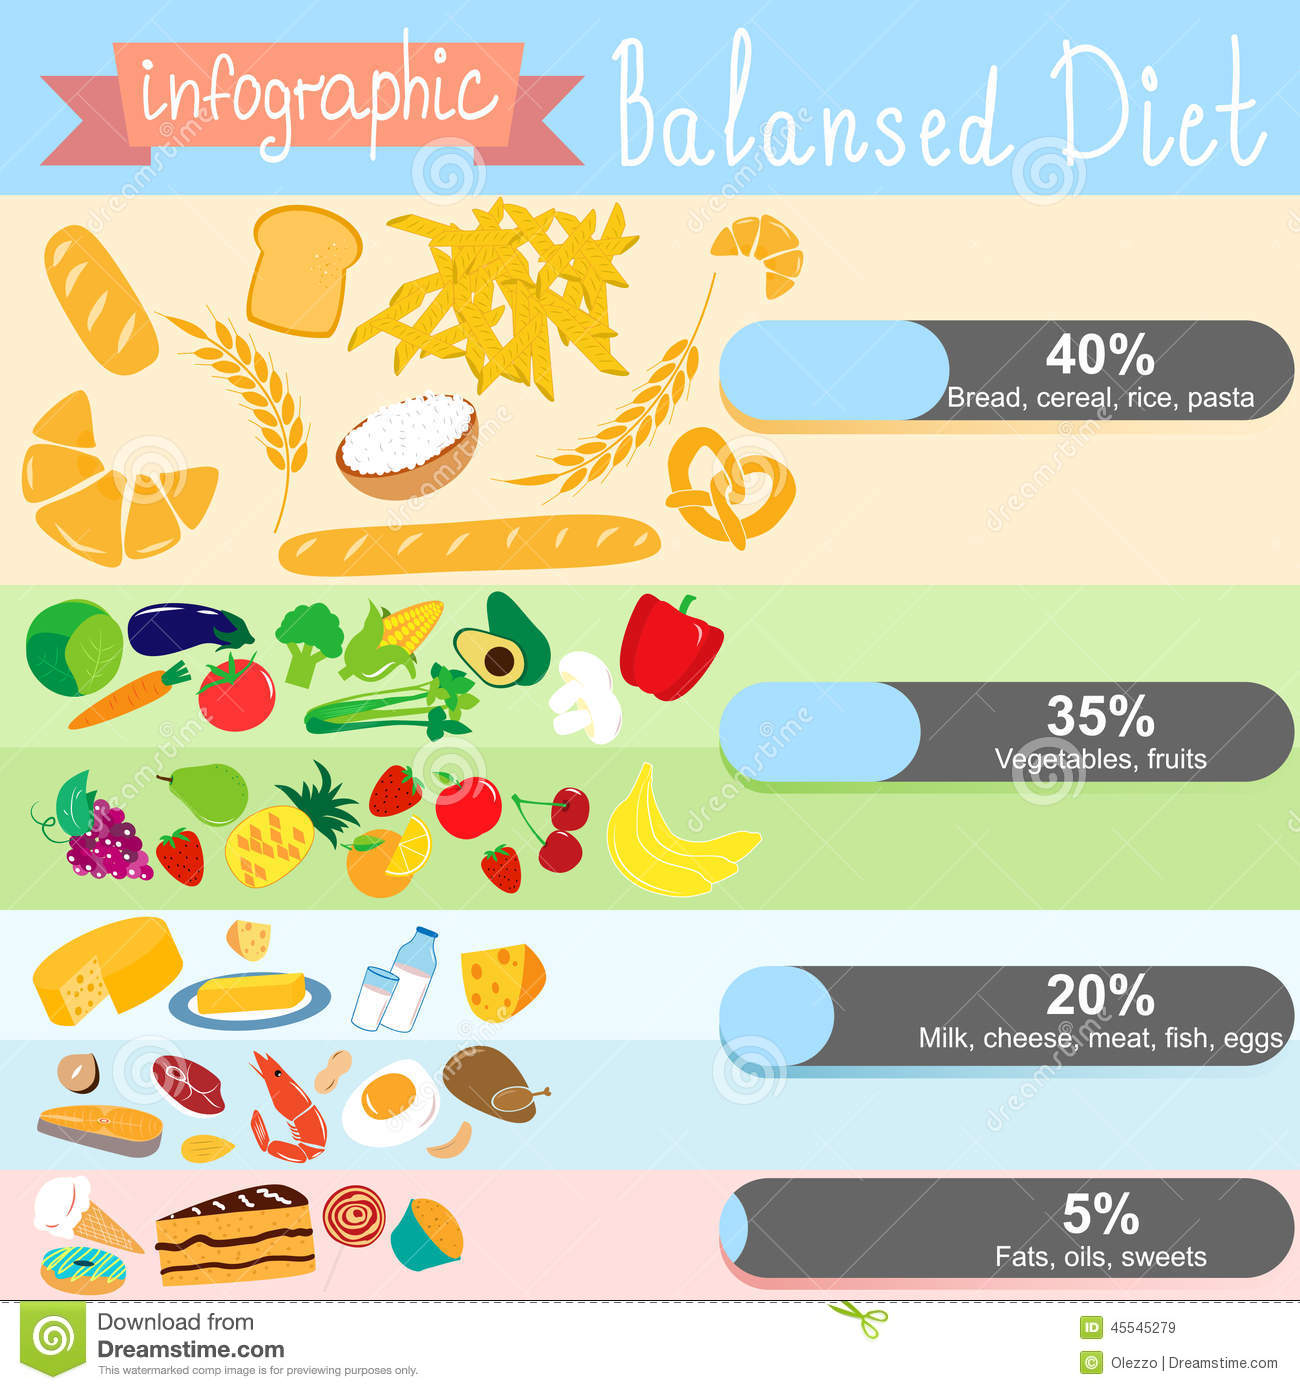 7 guidelines for healthy eating